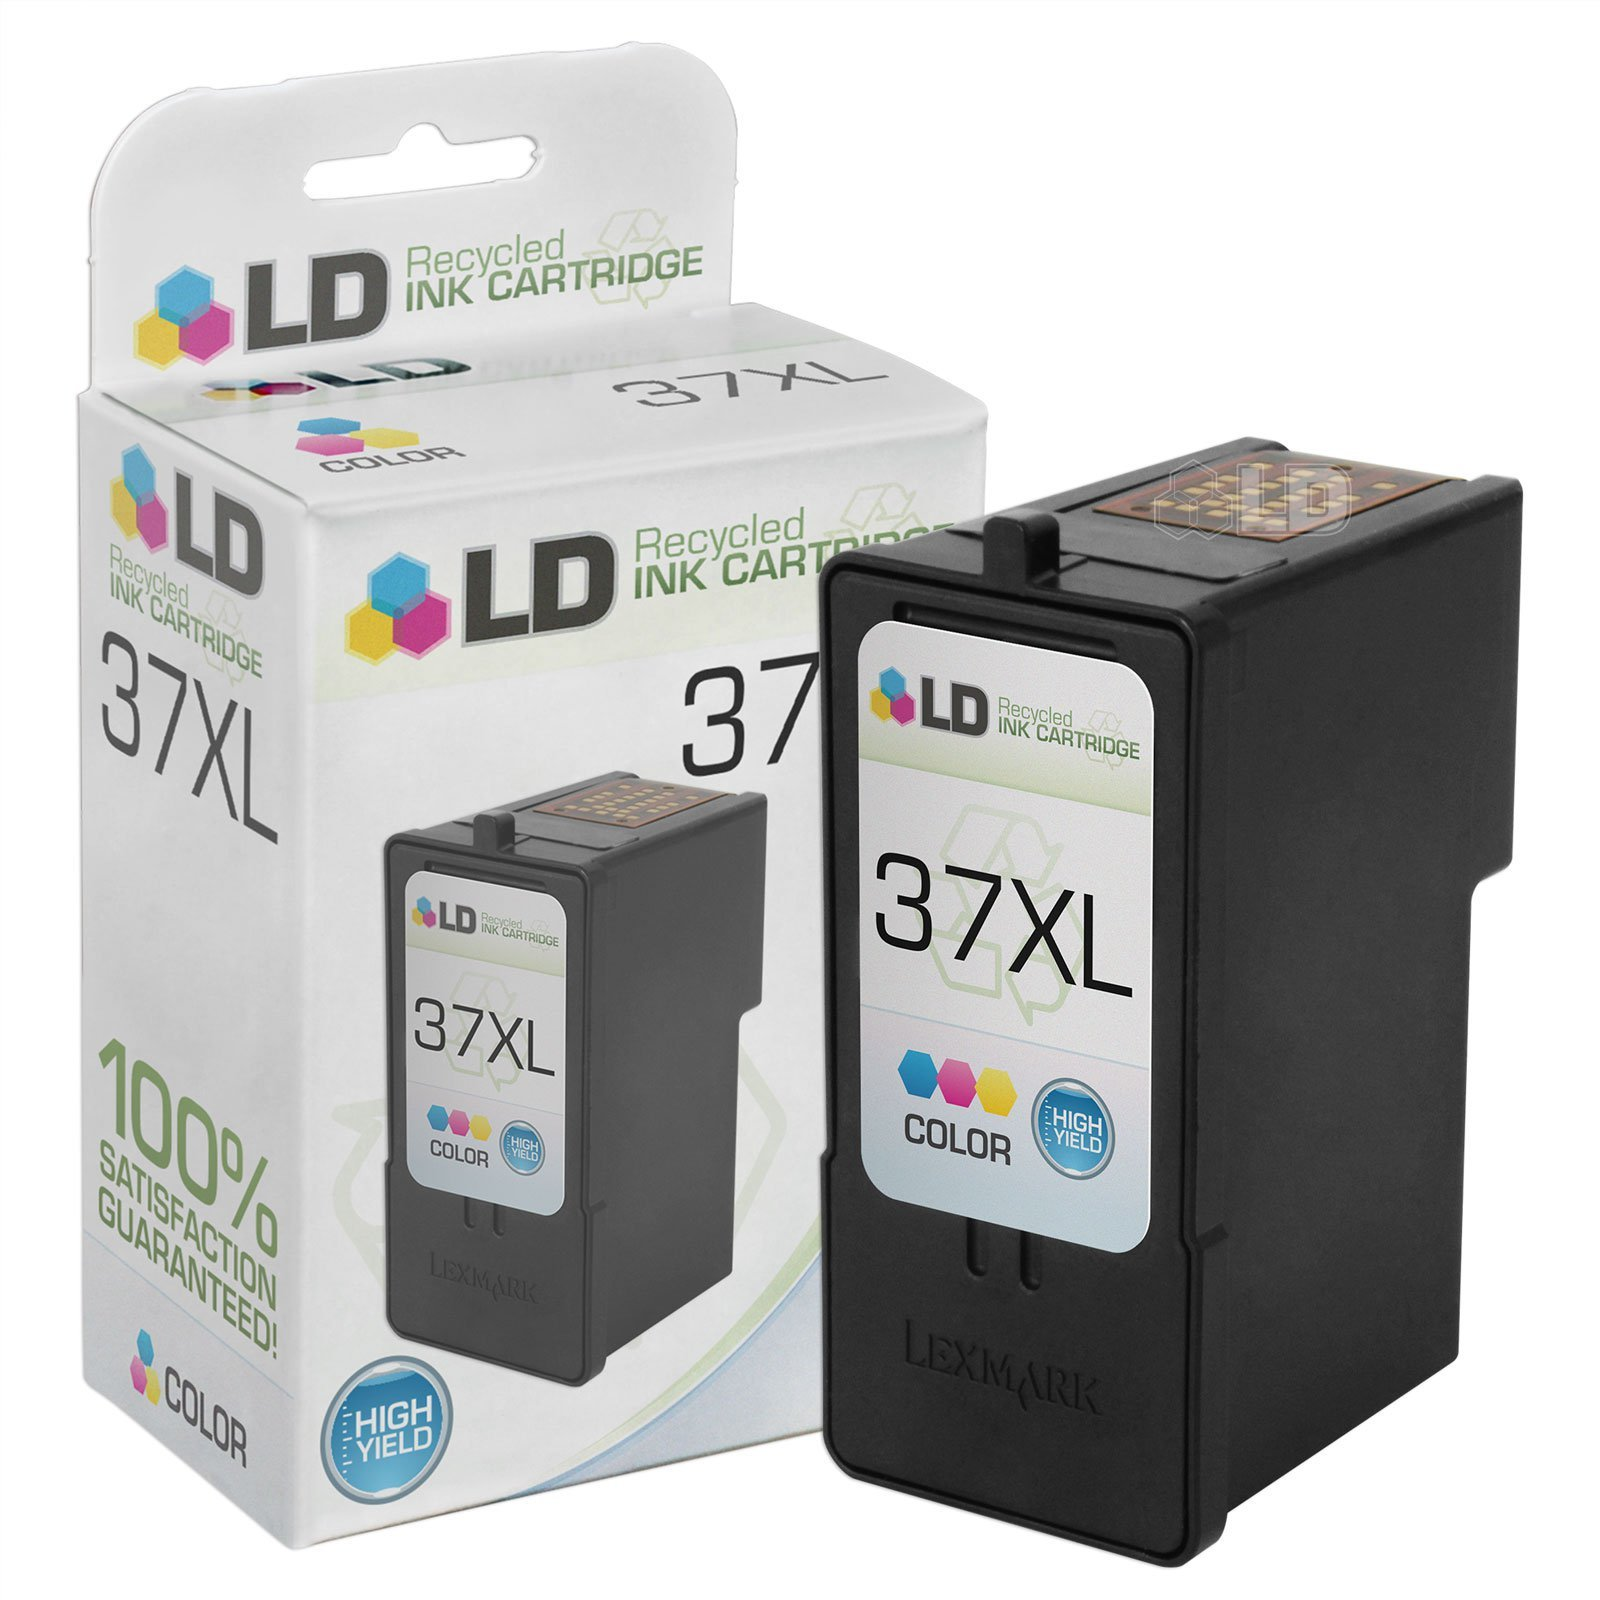 LD Remanufactured Toner Cartridge Replacement for Lexmark 37XL 18C2180 High Yield (Color)